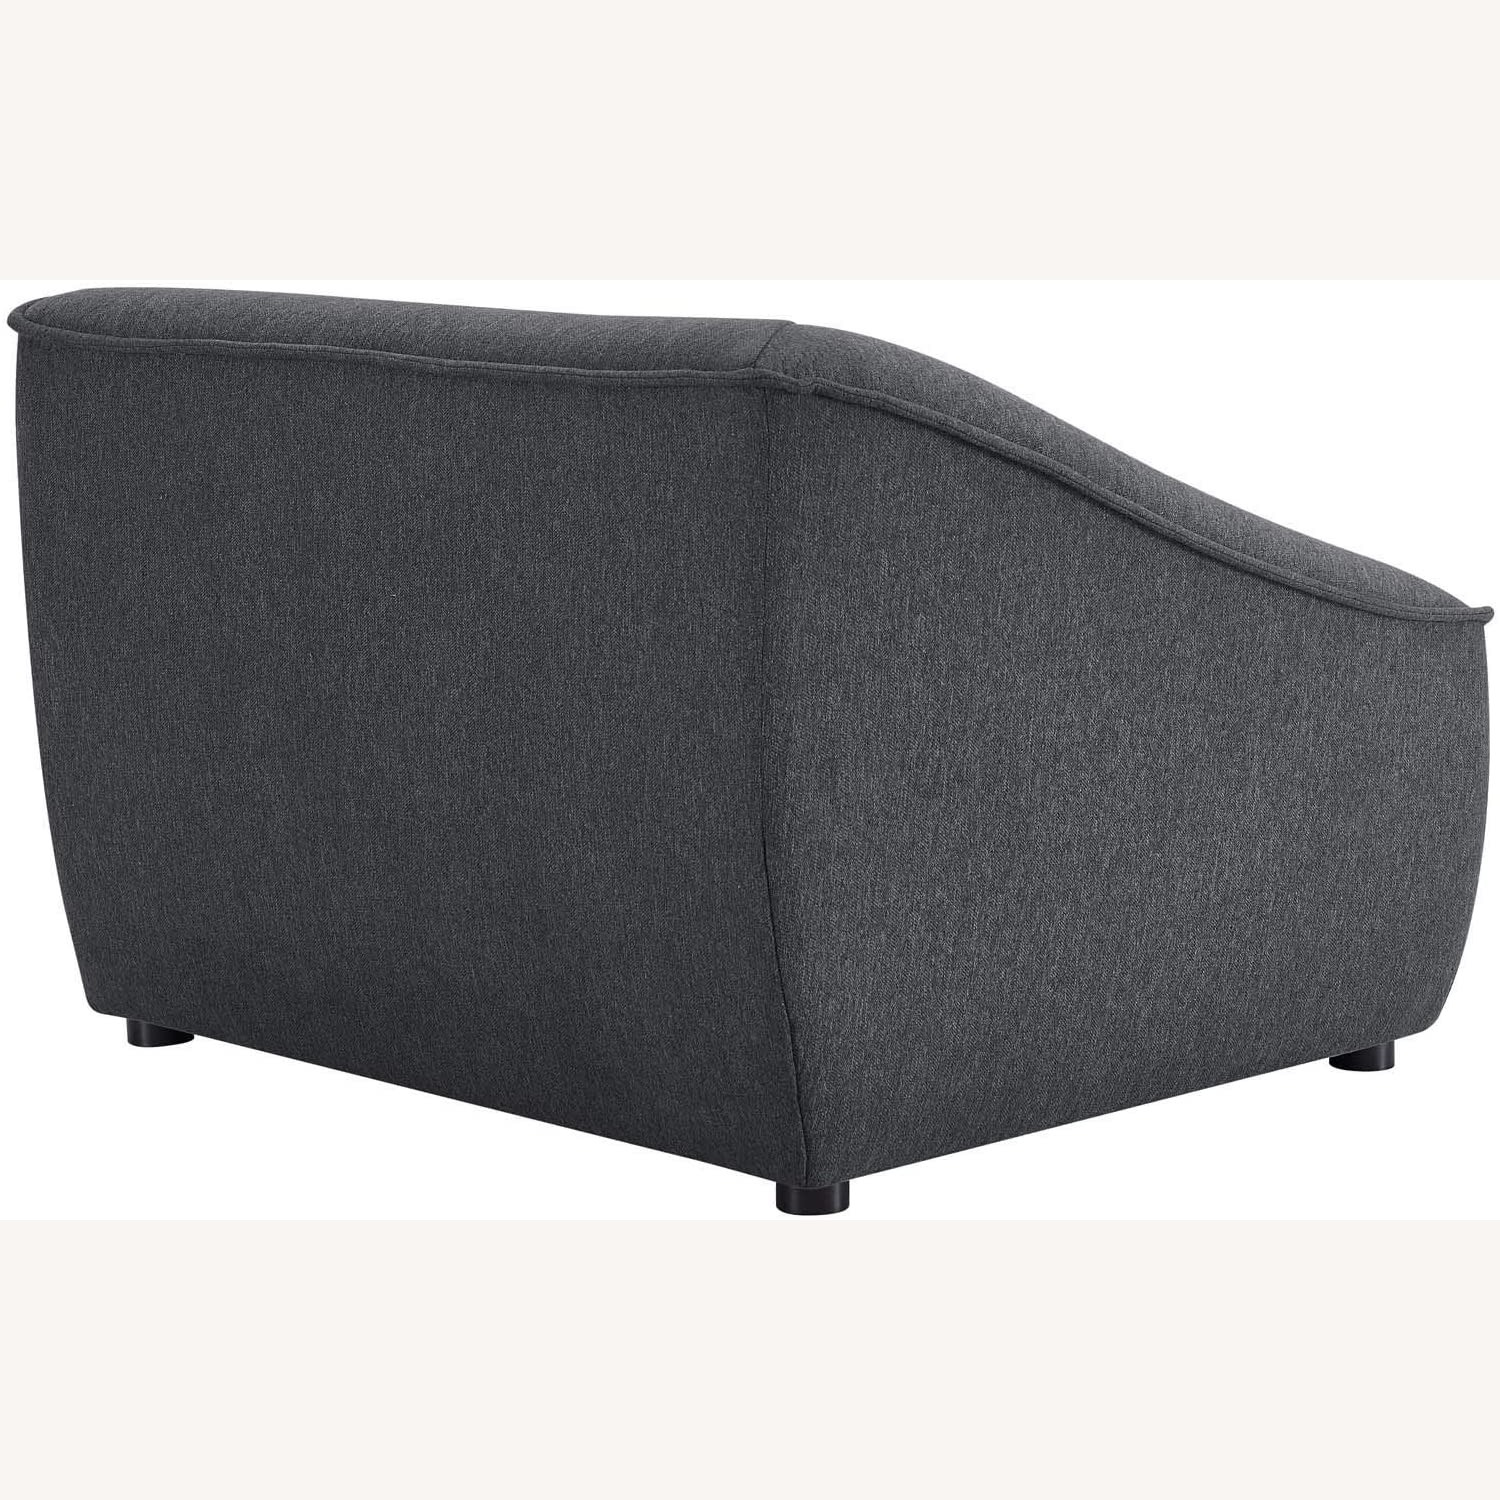 2-Piece Modern Loveseat In Charcoal Finish - image-6